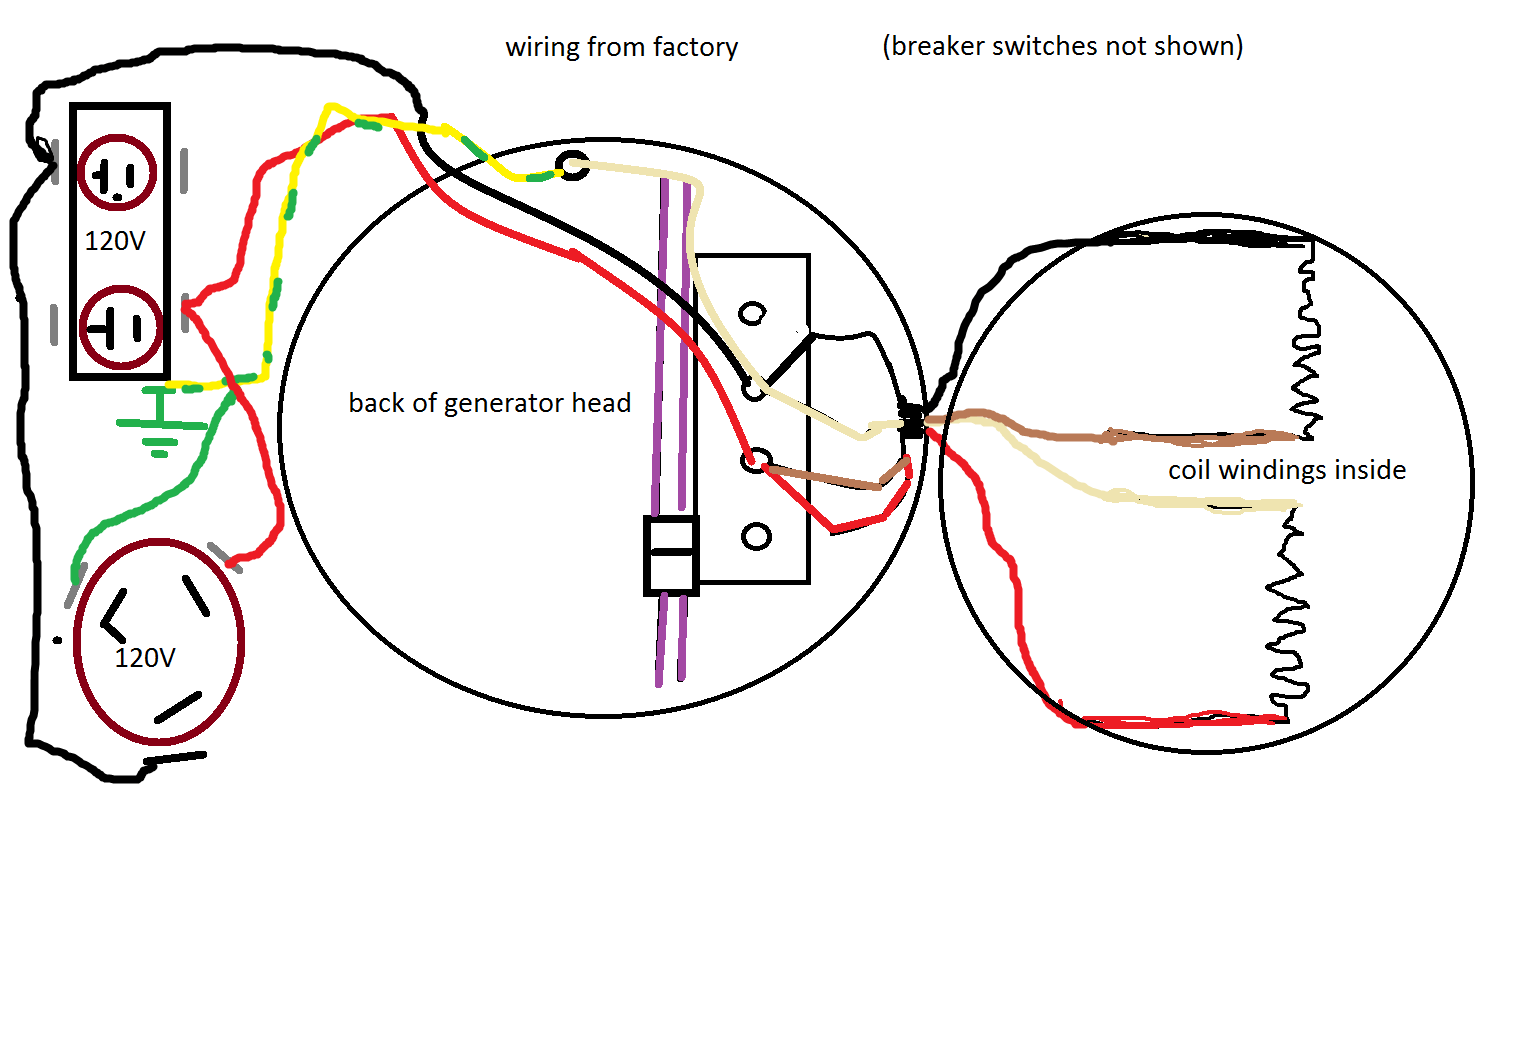 hight resolution of factory wiring 3050 chicago electric gen png